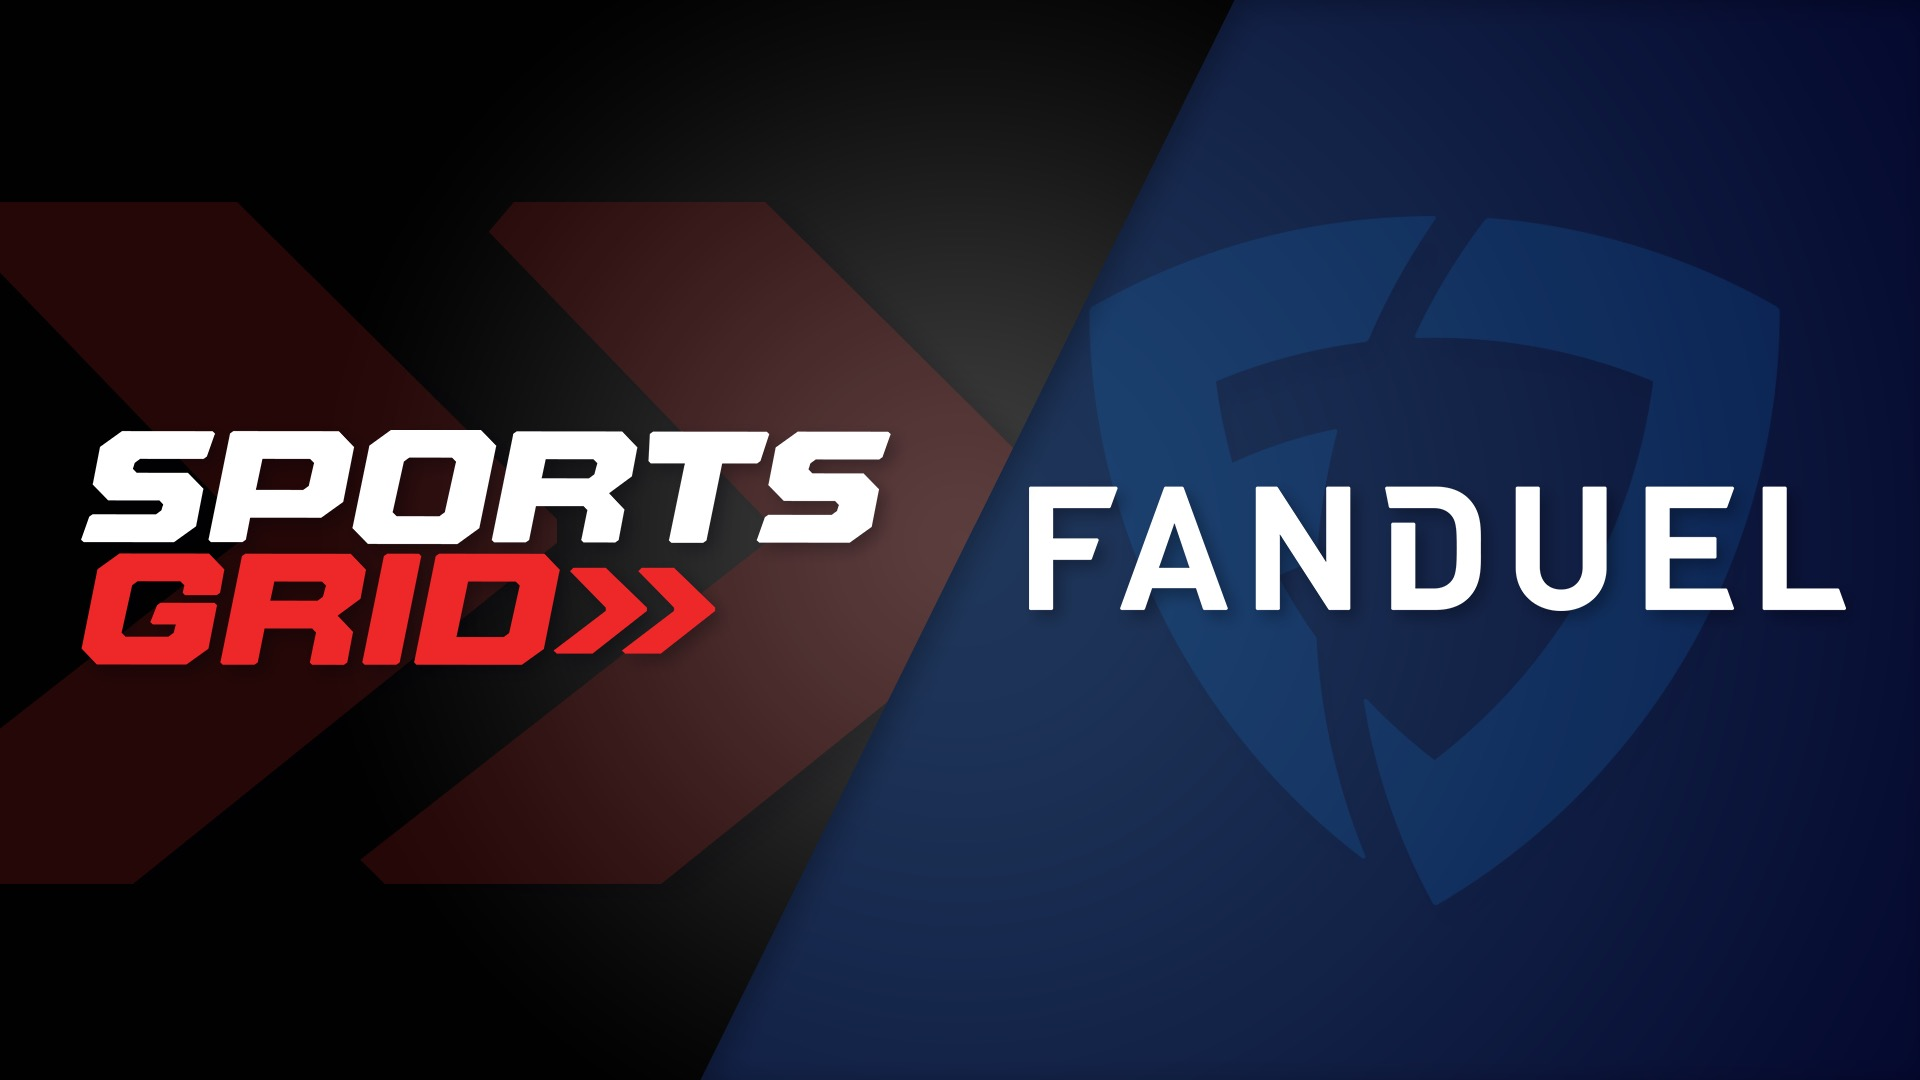 FanDuel Group and SportsGrid Announce  Exclusive Content and Distribution Partnership